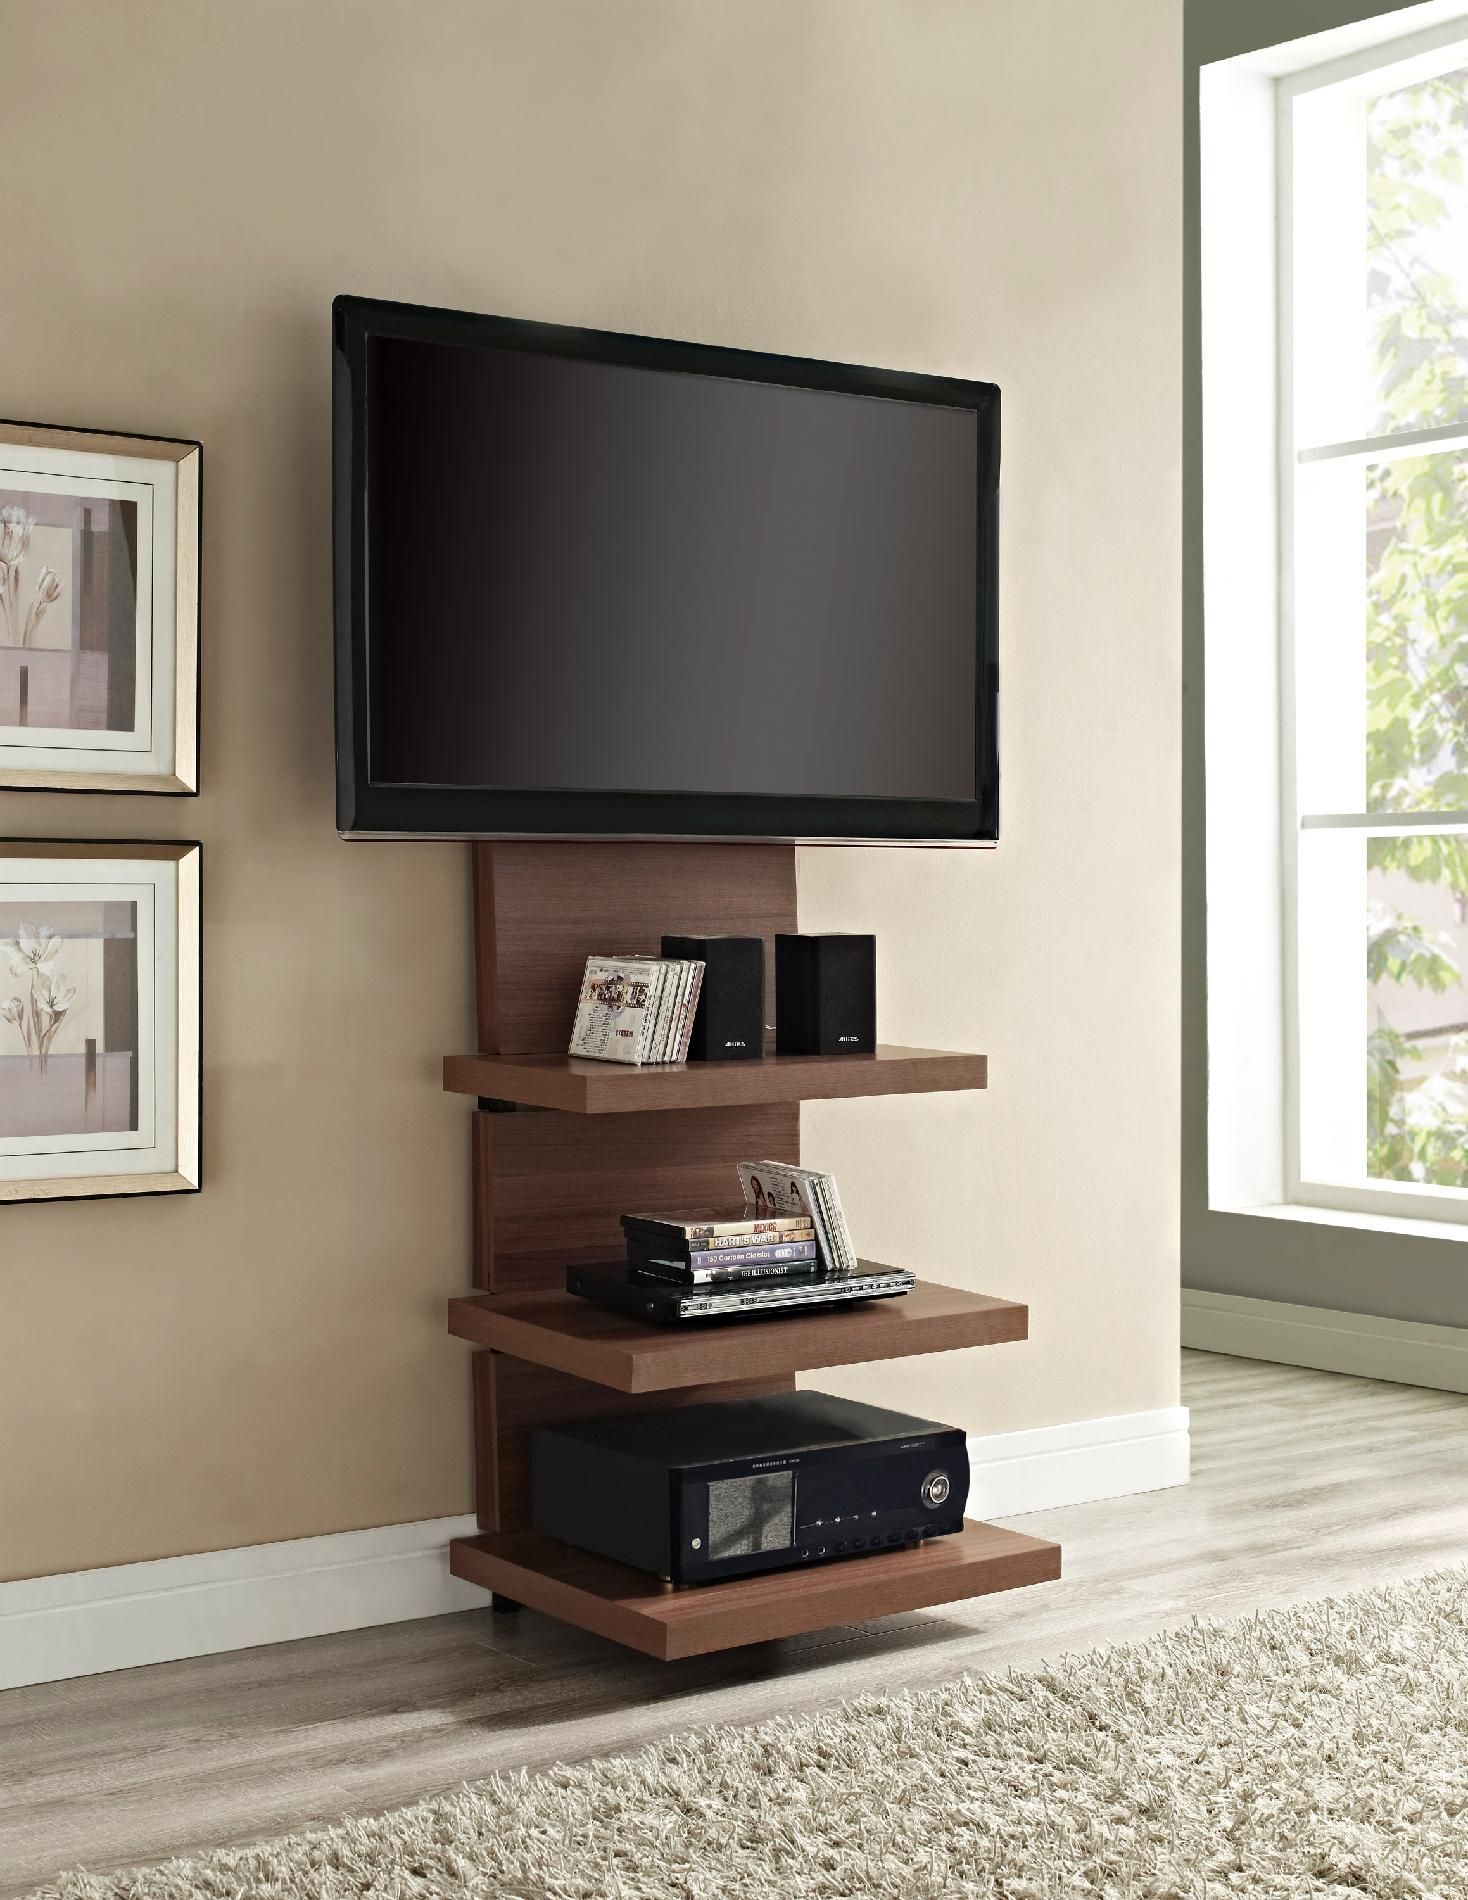 hight resolution of 18 chic and modern tv wall mount ideas for living room dream home rh pinterest com home entertainment wiring home entertainment wiring ideas